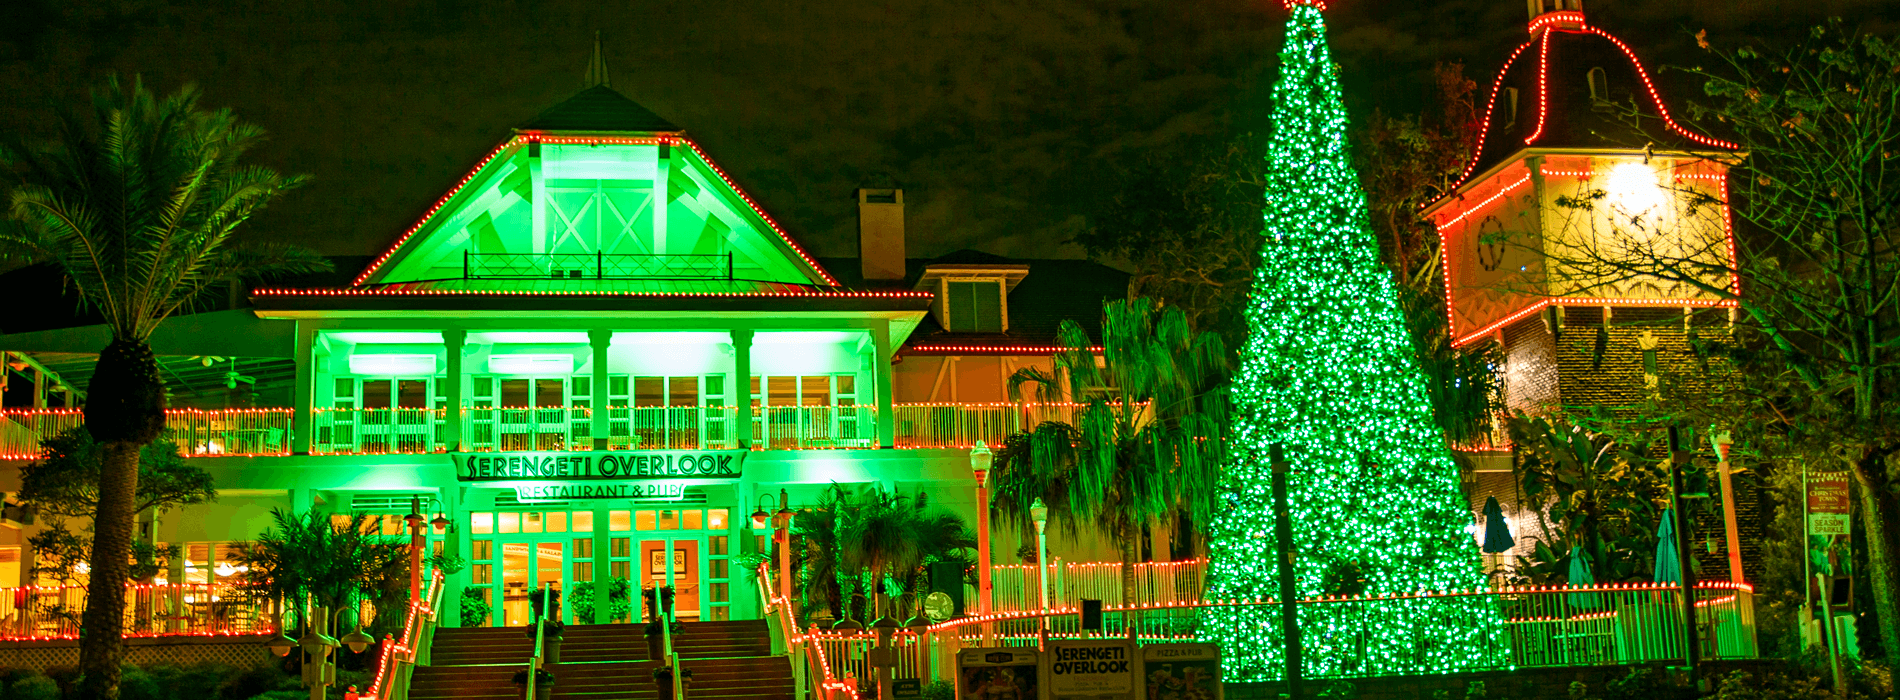 Serengeti Overlook Restaurant during Christmas Town Holiday Event